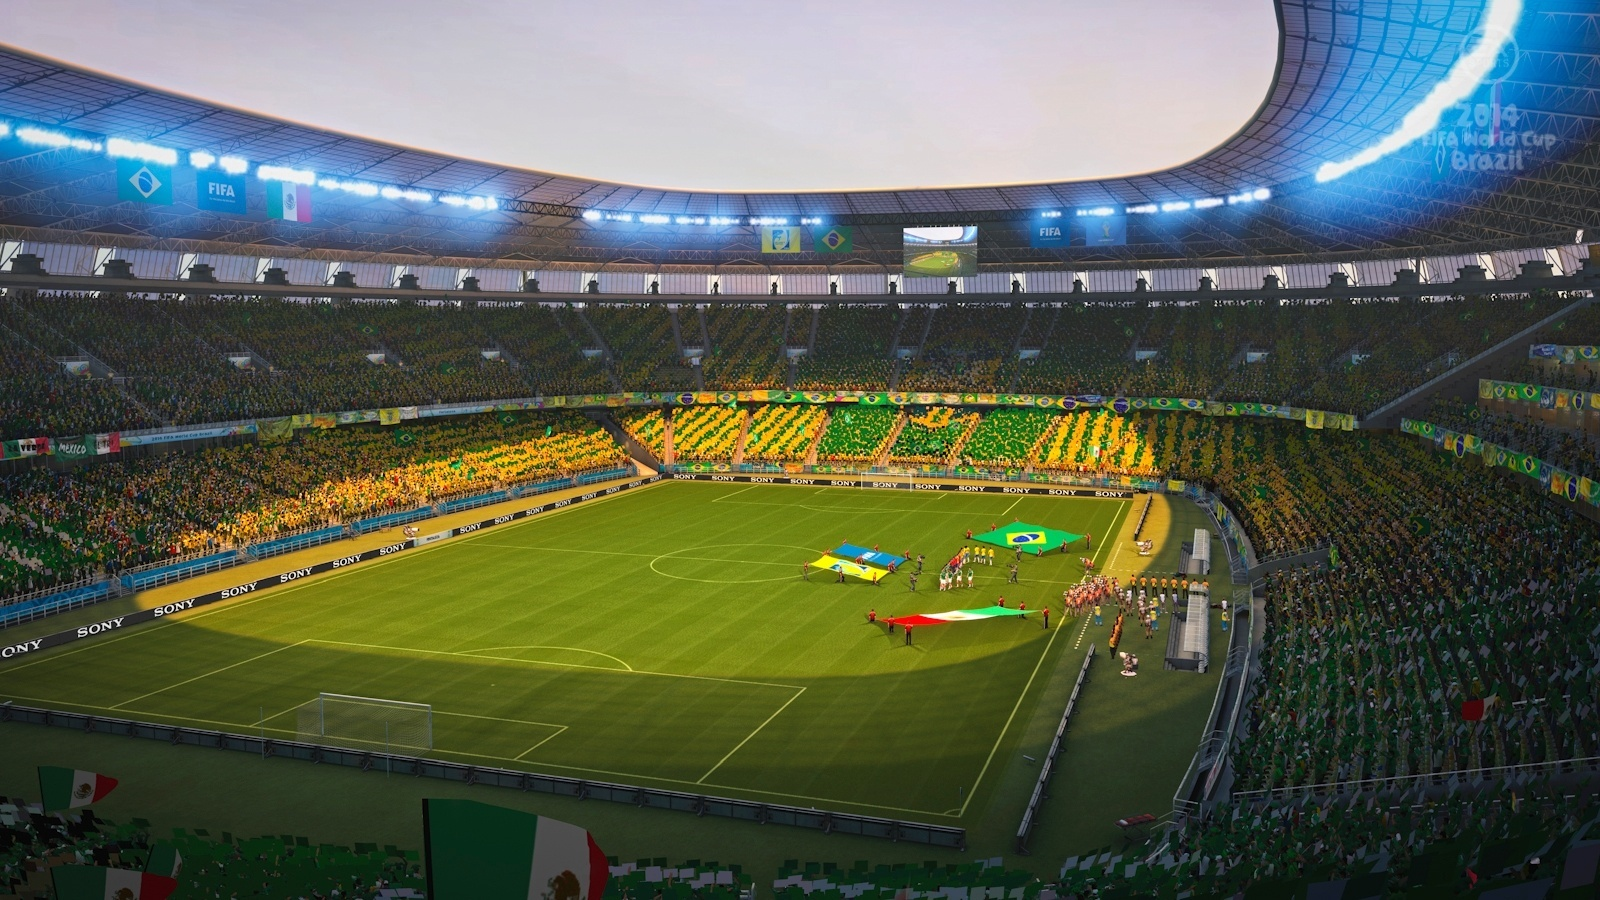 fifa world cup 2014 in brazil essay The 2014 fifa world cup was the 20th fifa world cup, the quadrennial world  championship for men's national football teams organized by fifa it took place  in brazil from 12 june to 13 july 2014, after the country was.